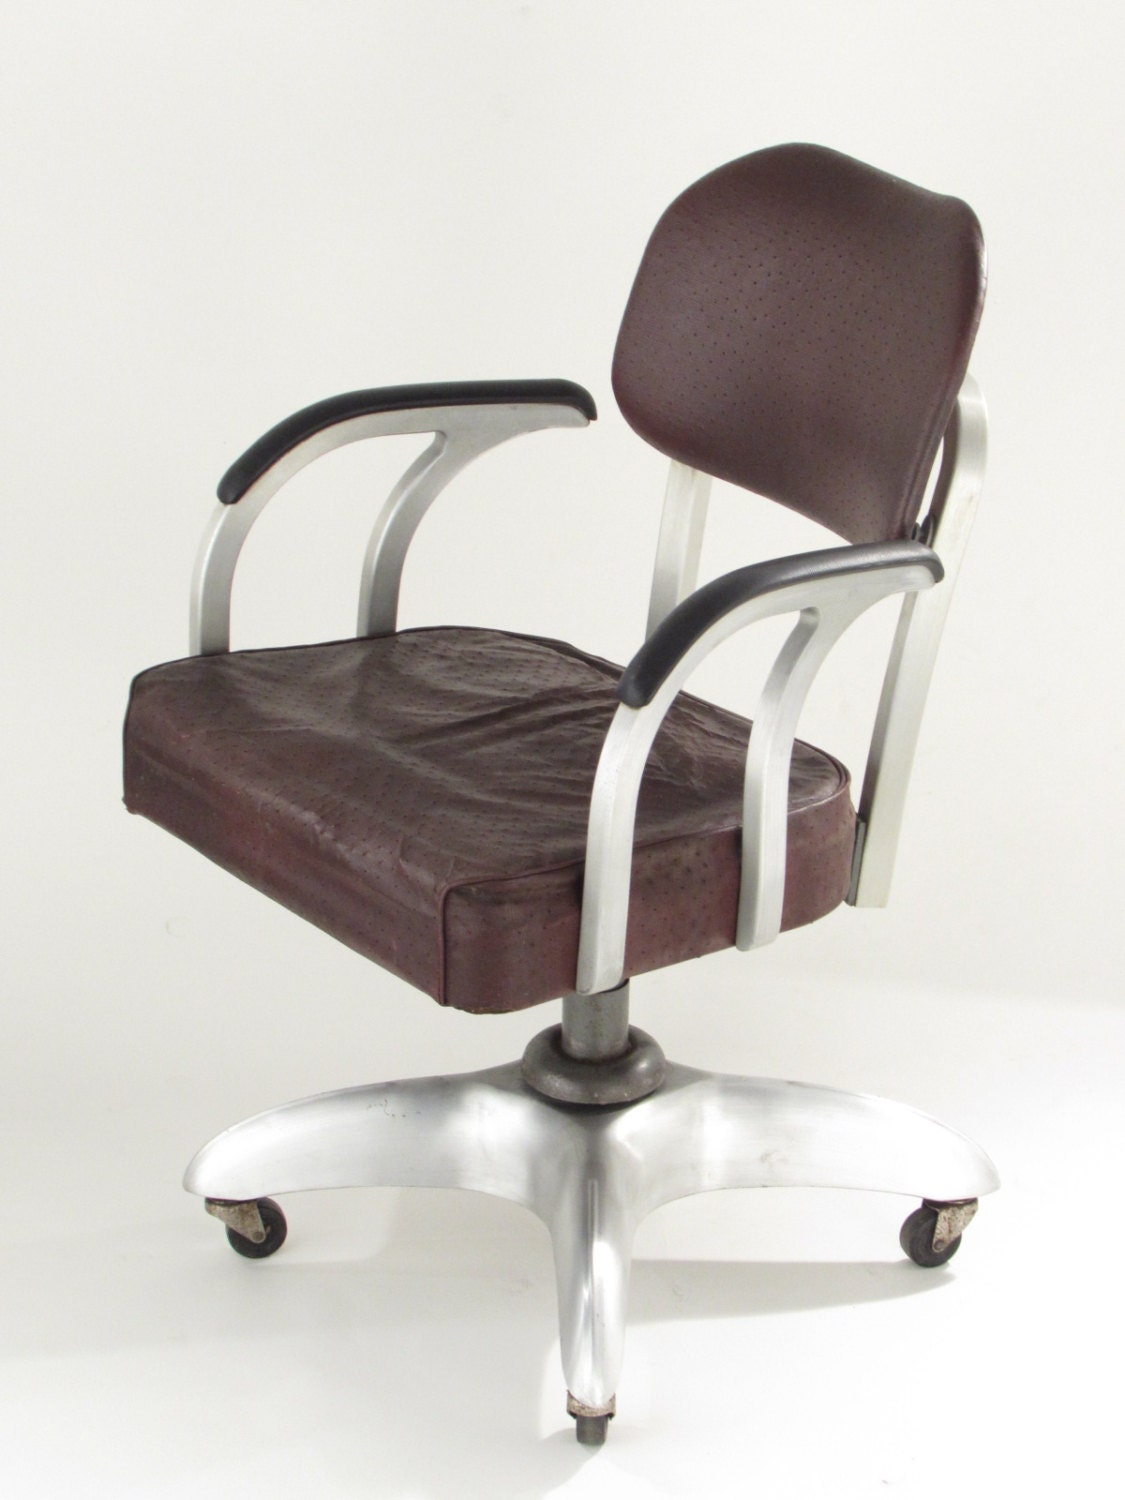 Goodform metal office chair vintage propeller base general for Antique office chair